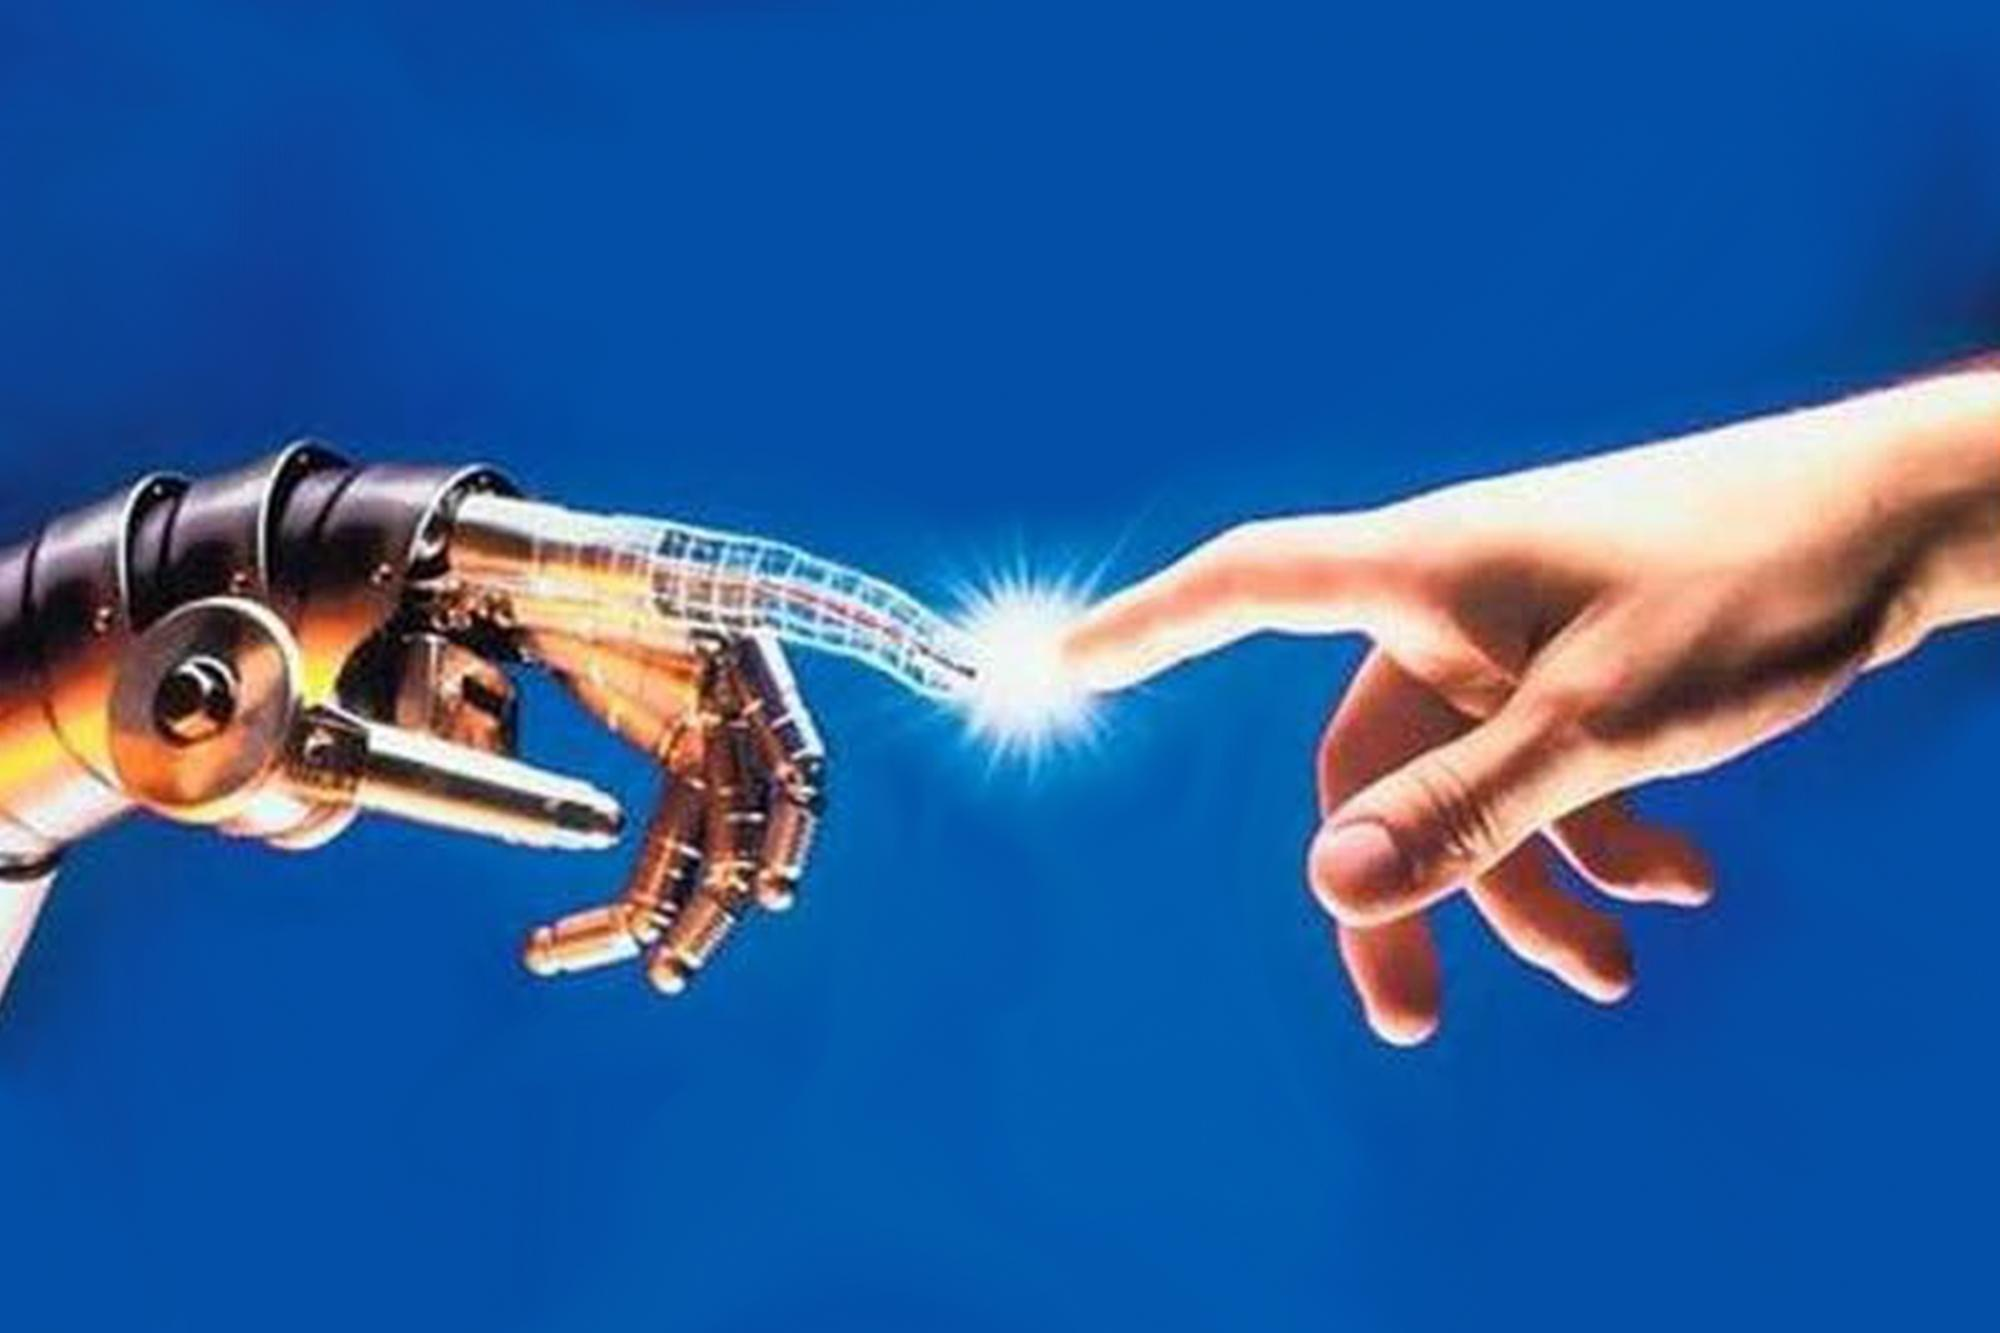 Futuristic photo from 1970s of robot and human hand touching